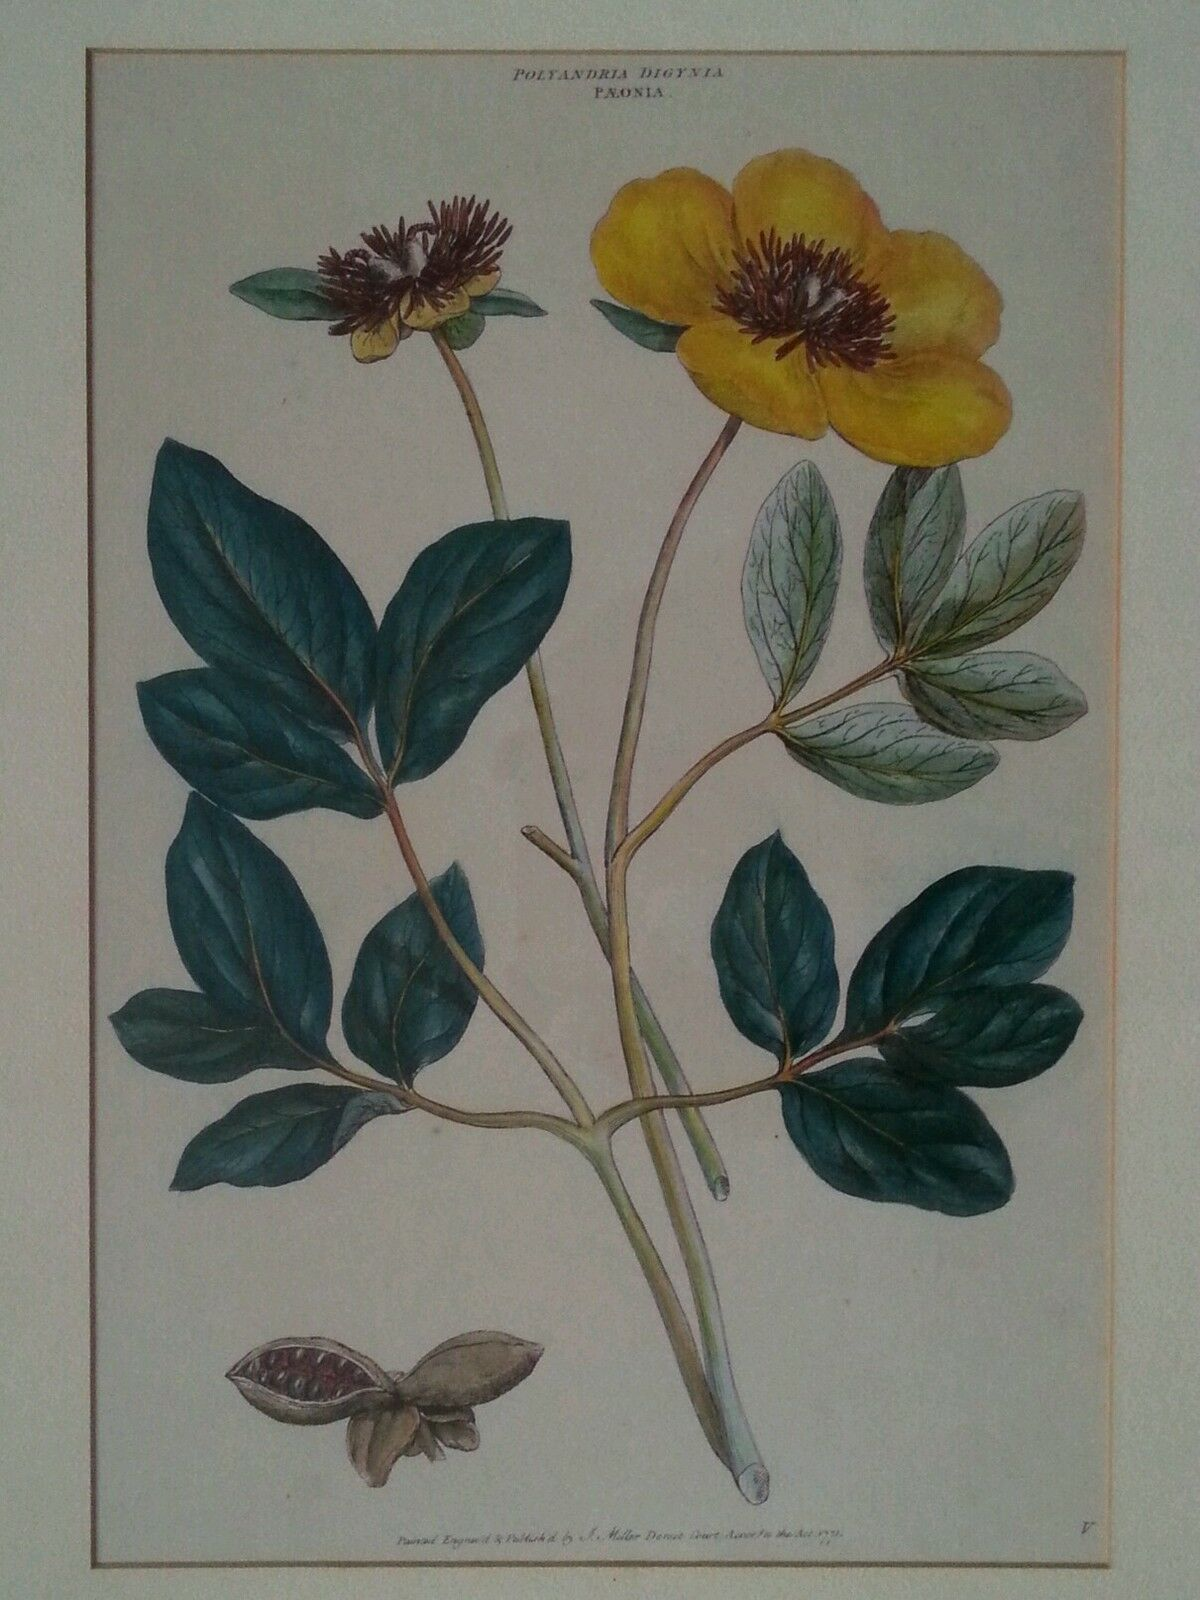 """Antique botanical lithograph by J. Miller """"Polyandra Digynia Paeonia """""""